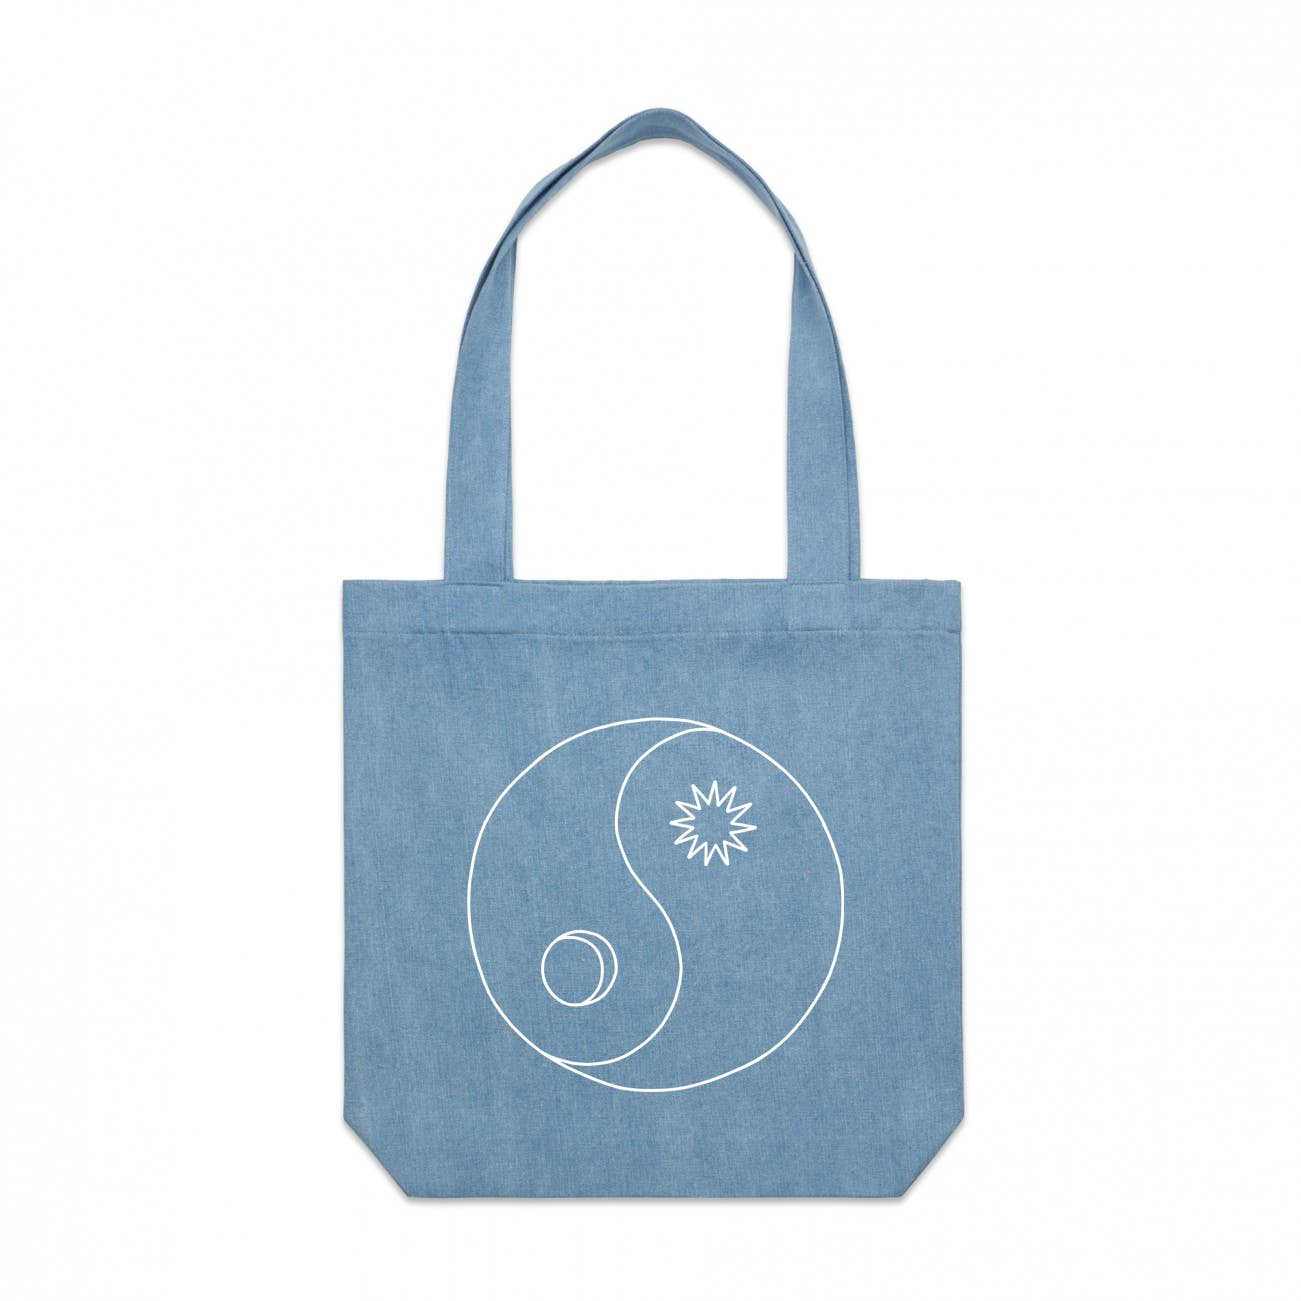 Yin Yang Denim Tote Bag